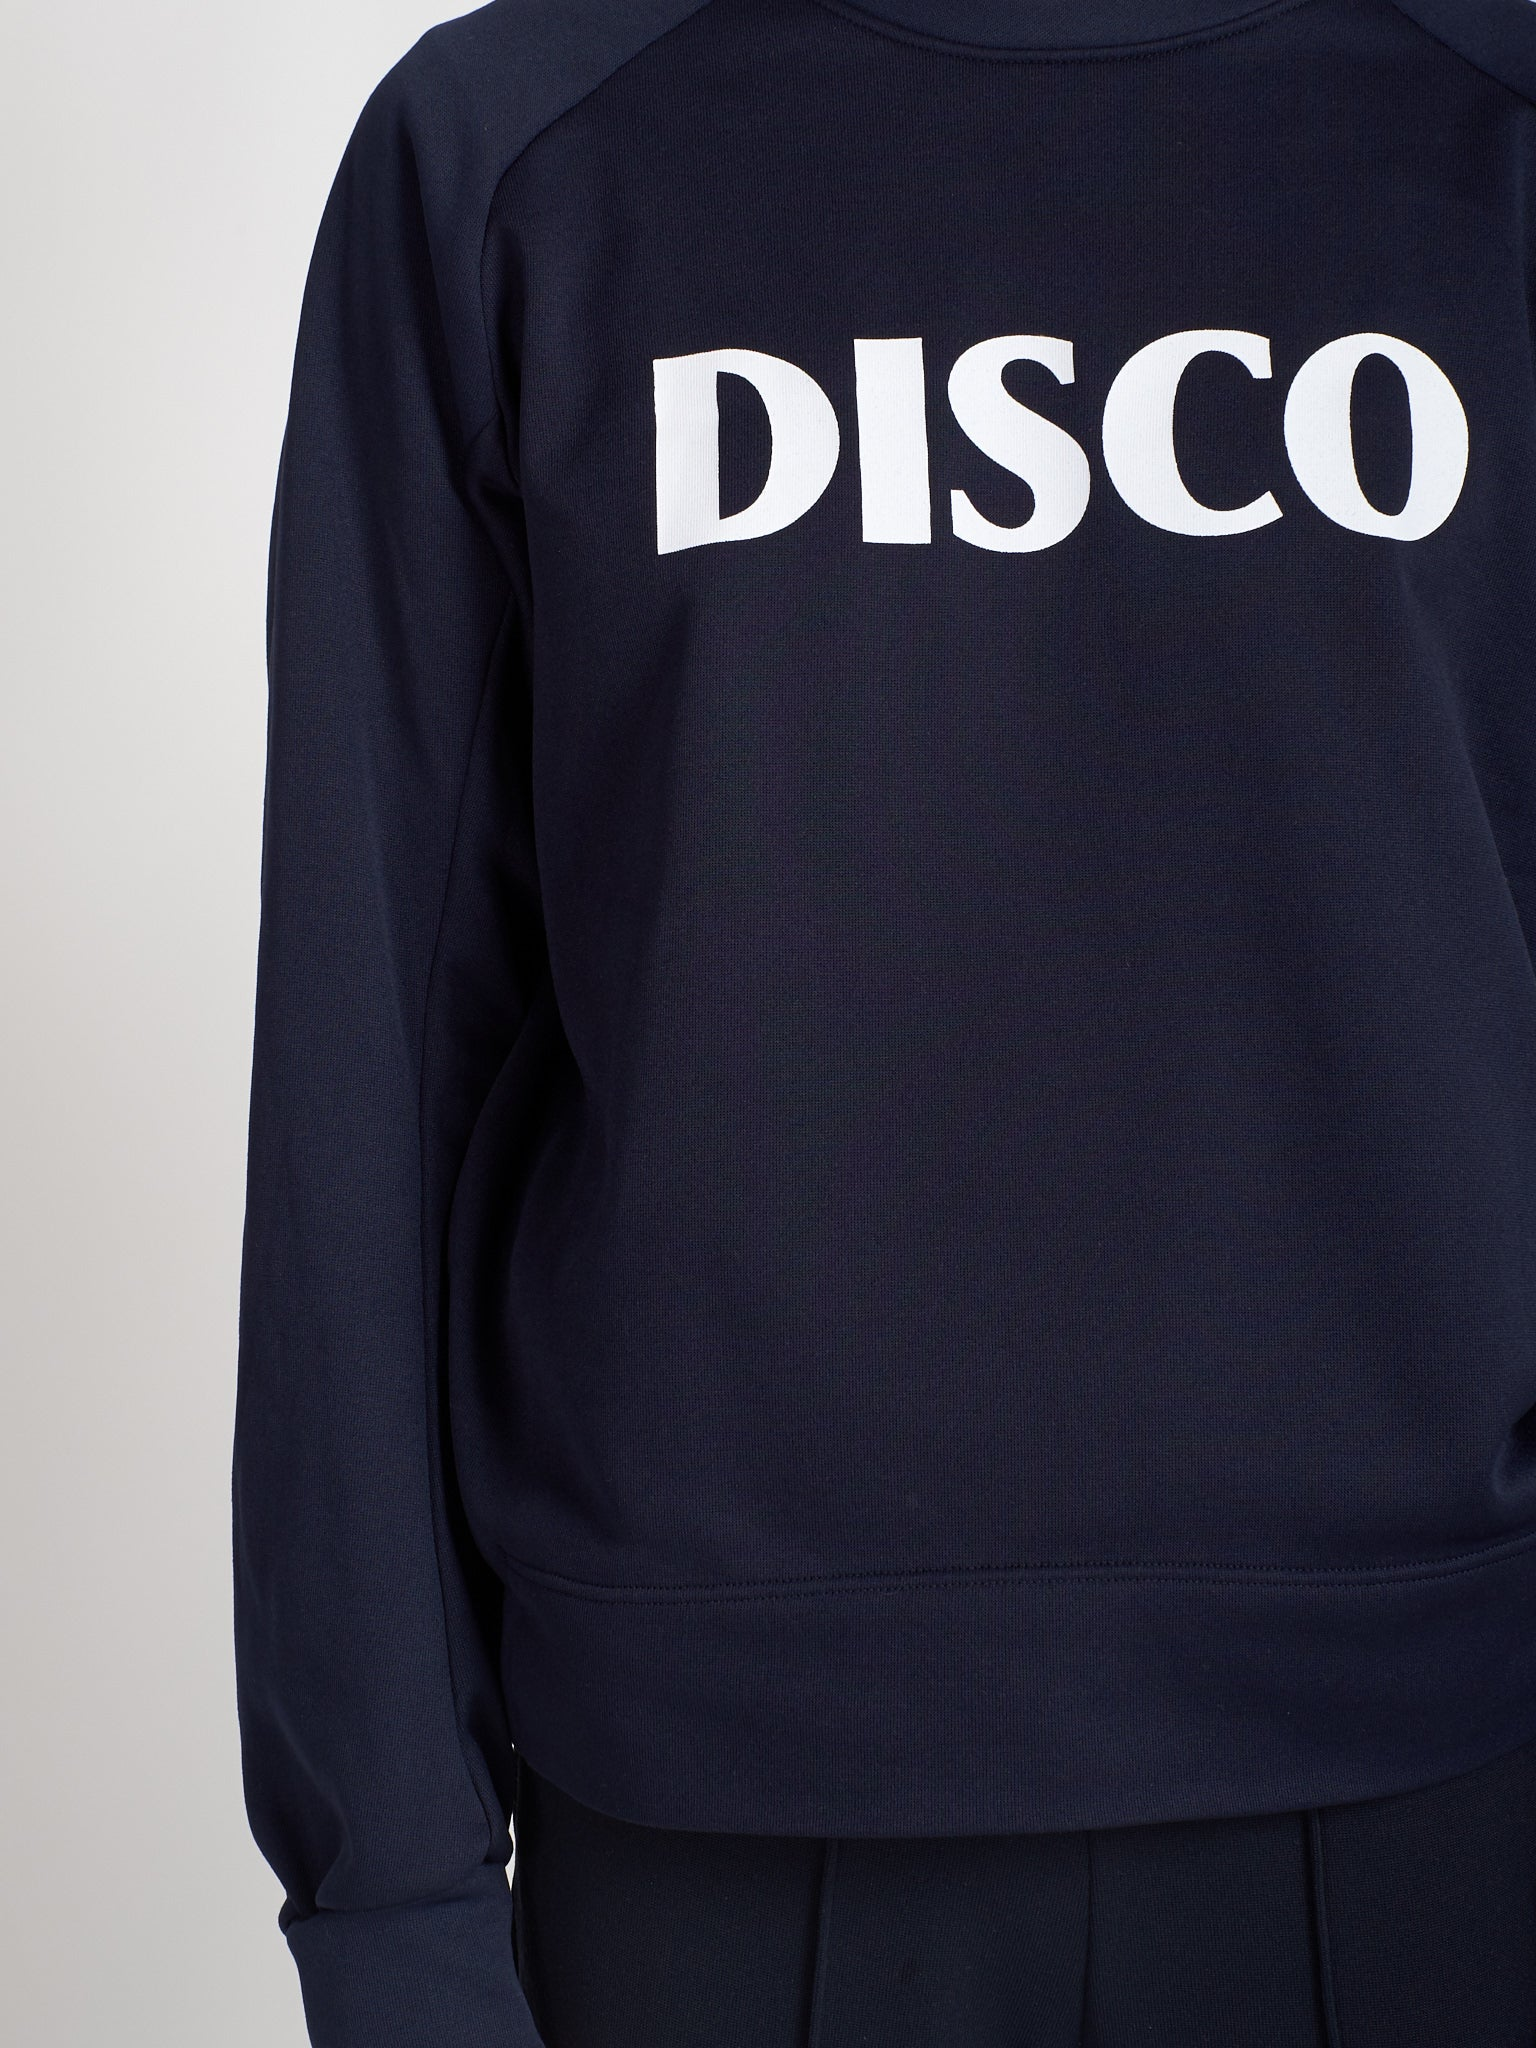 Disco Tracksuit Sweater Women